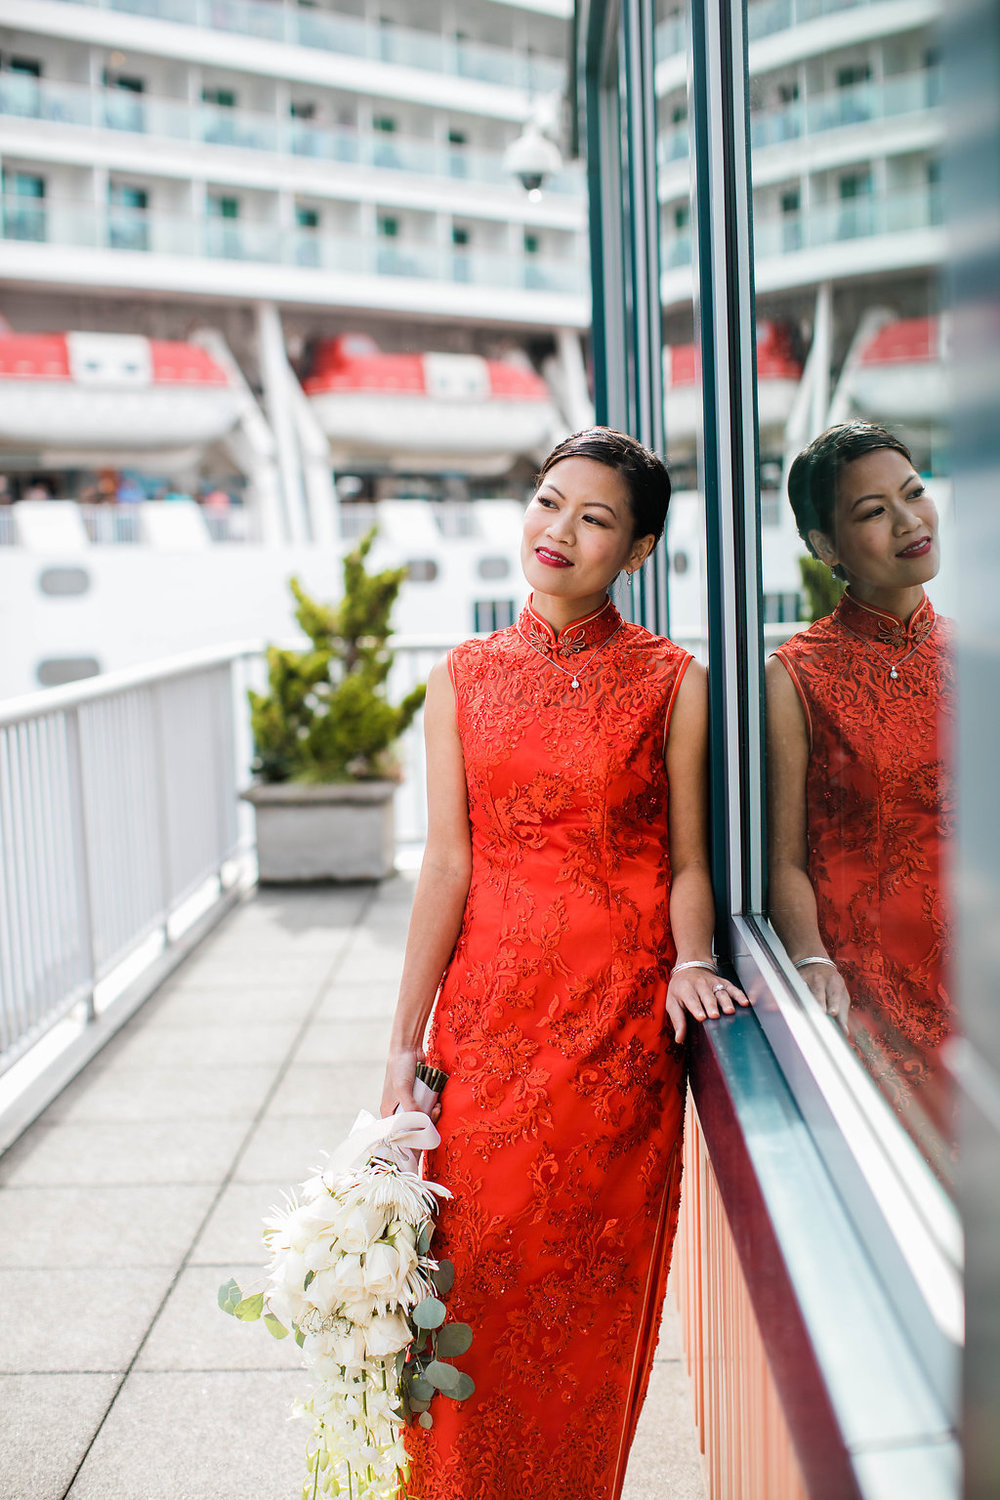 Bao_Uyen+Chris_Wedding_Seattle_Bell_Harbor_6182016_339.jpg